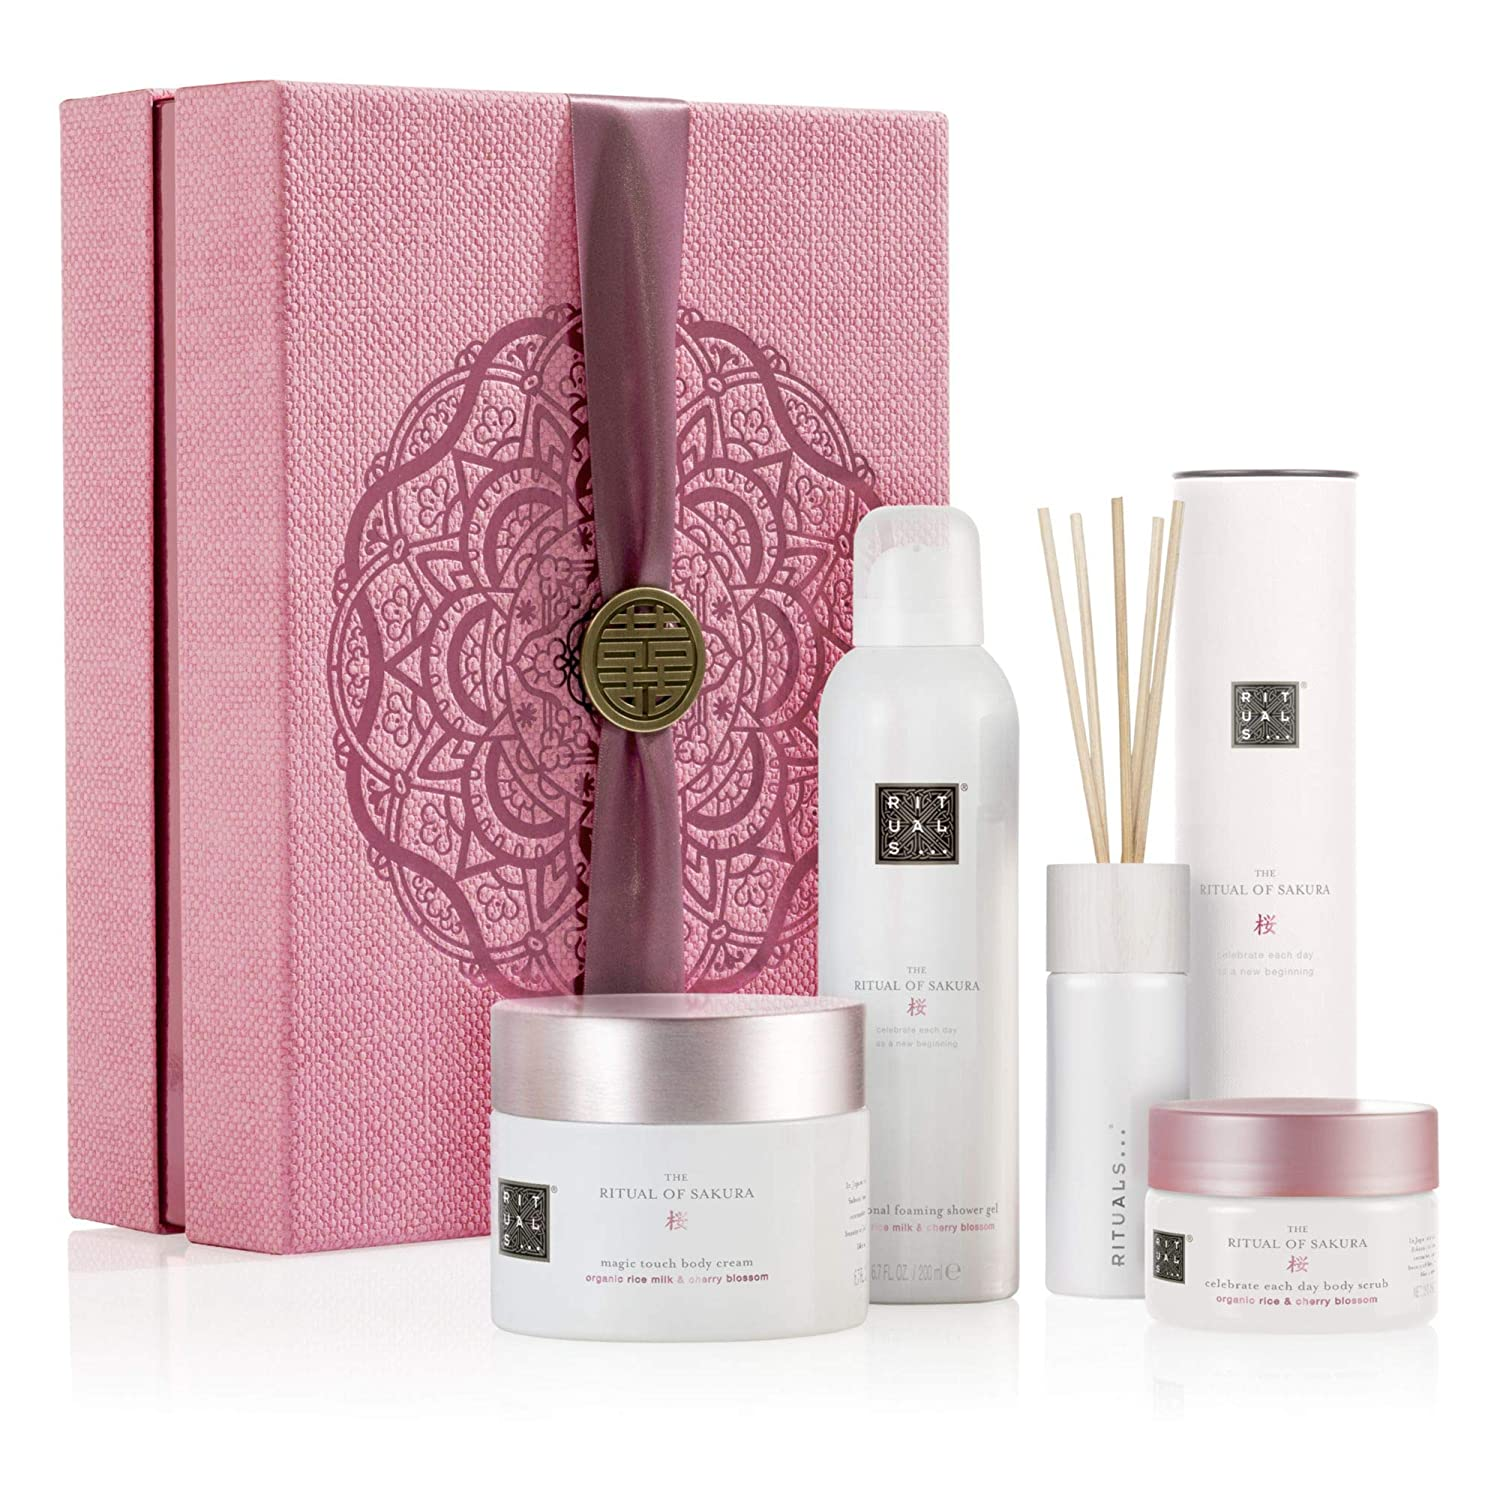 RITUALS The Ritual of Sakura Set de Regalo Large, Renewing Collection: Amazon.es